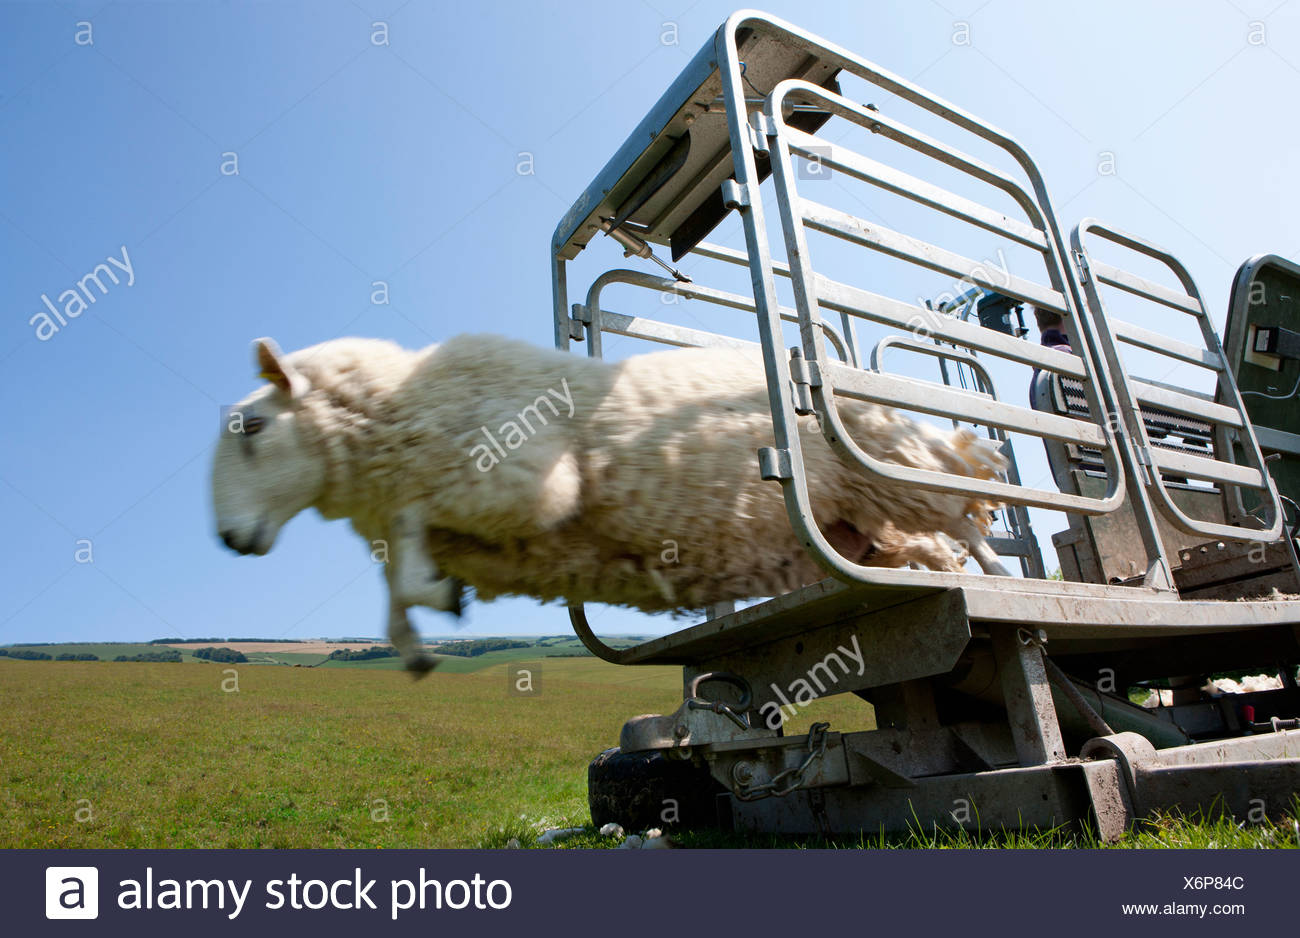 Sheep leaping out of animal pen into grass - Stock Image